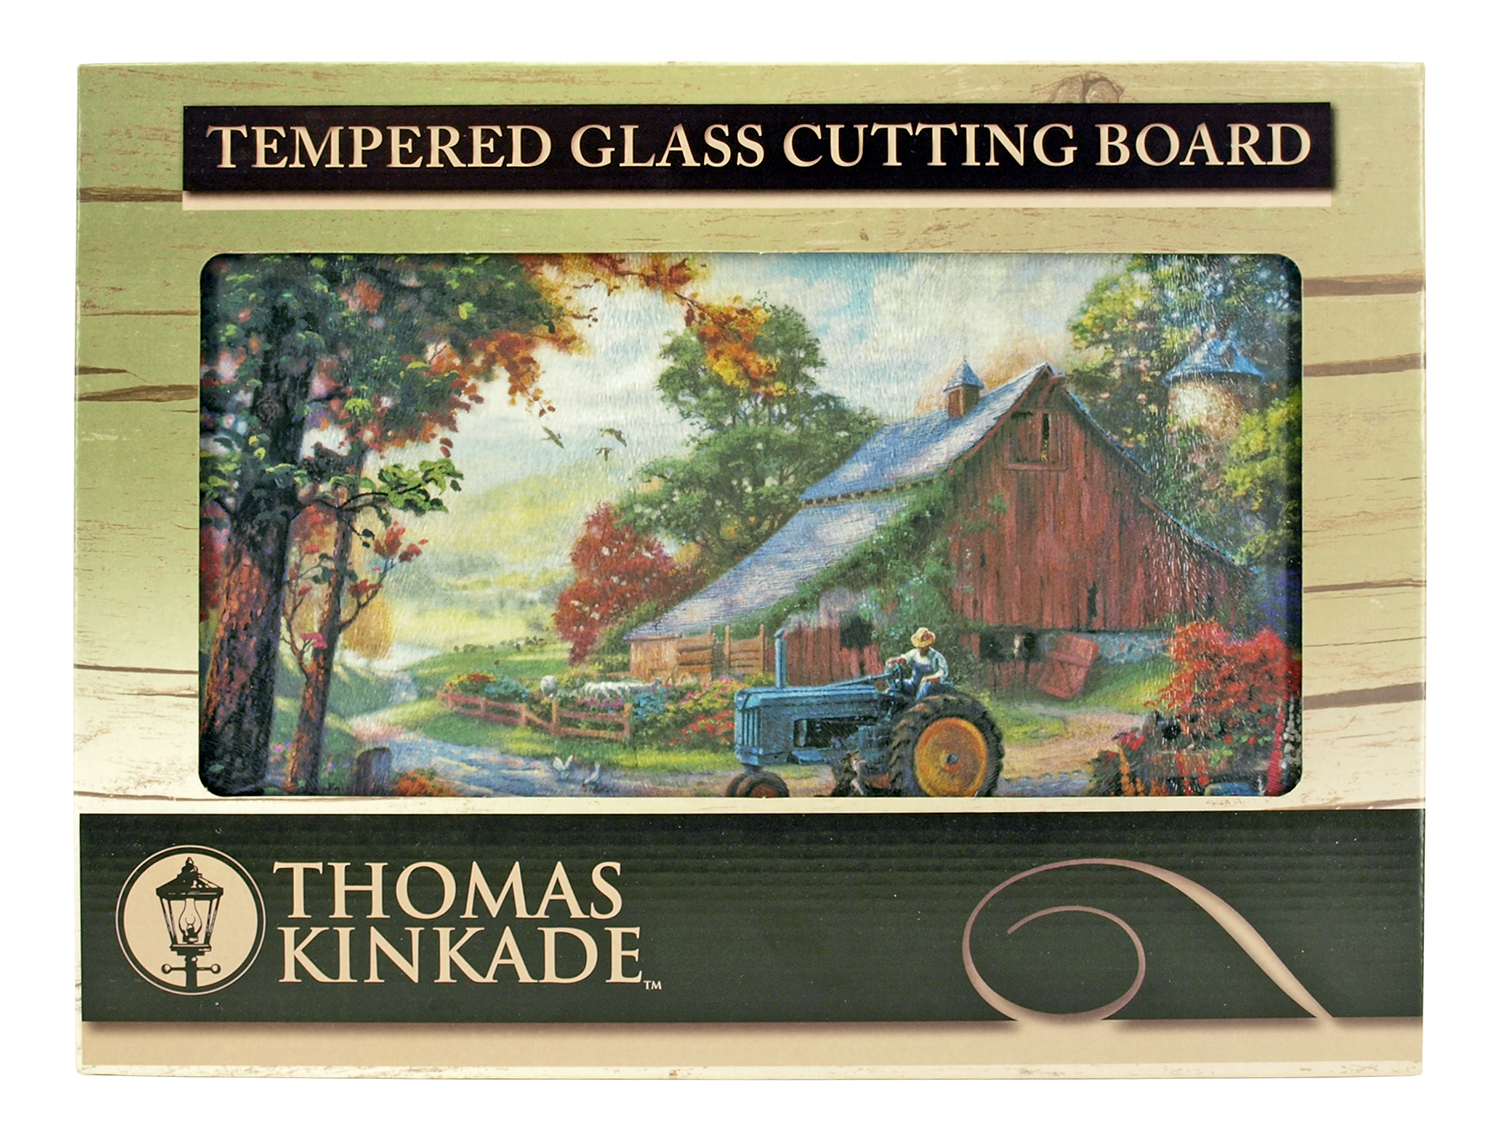 16 in x 12 in Thomas Kinkade Tempered Glass Cutting Board - Summer Heritage